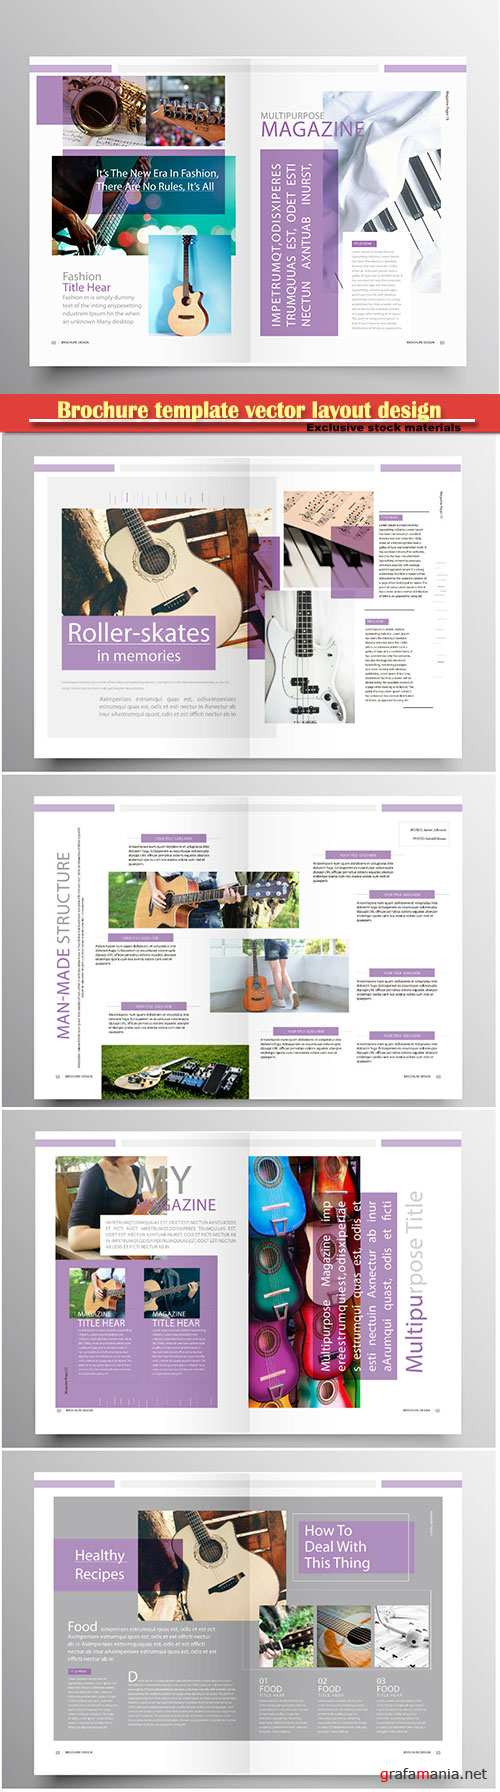 Brochure template vector layout design, corporate business annual report, magazine, flyer mockup # 182